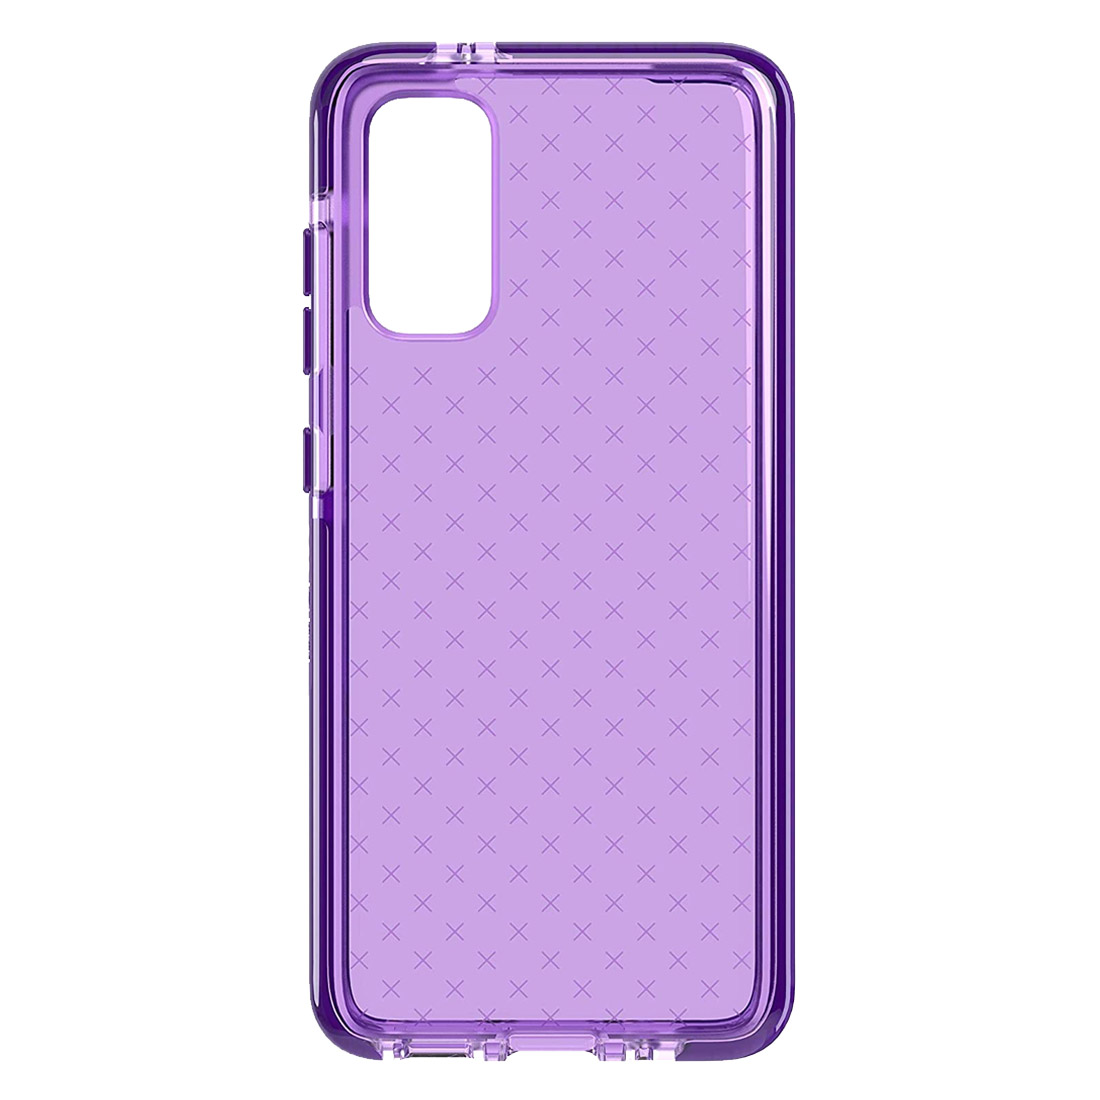 Tech21 Evo Check Case for Samsung Galaxy S20+ Plus T21-7680 - Pansy